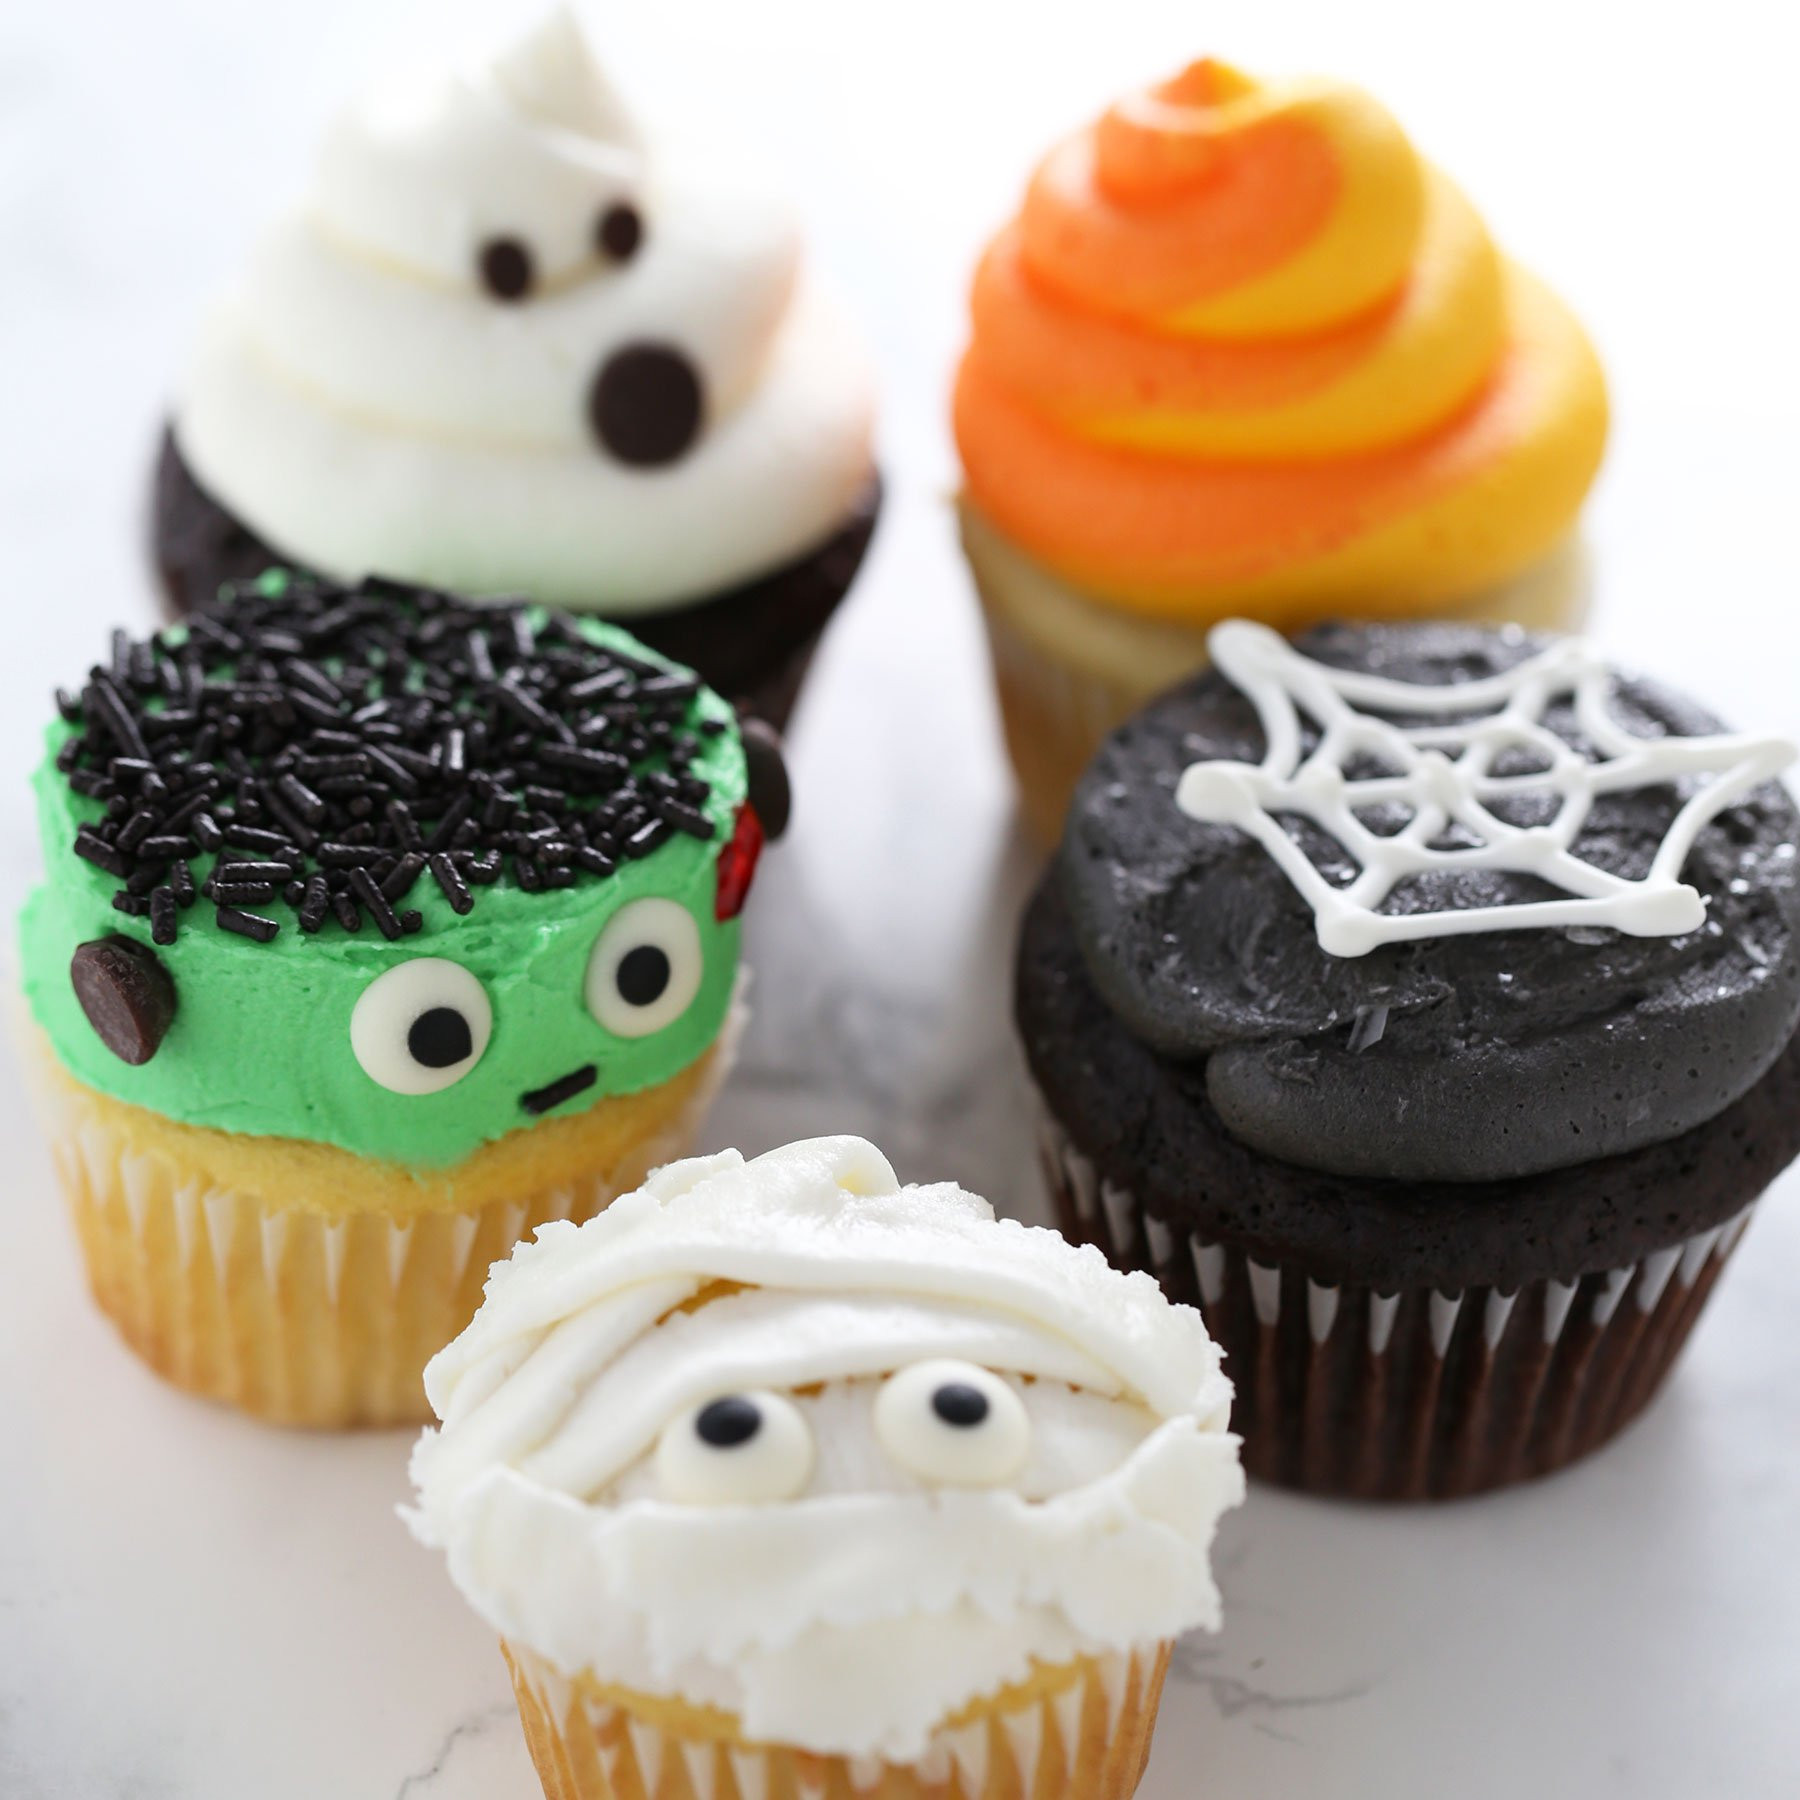 Cupcakes For Halloween  How to Make Halloween Cupcakes Handle the Heat